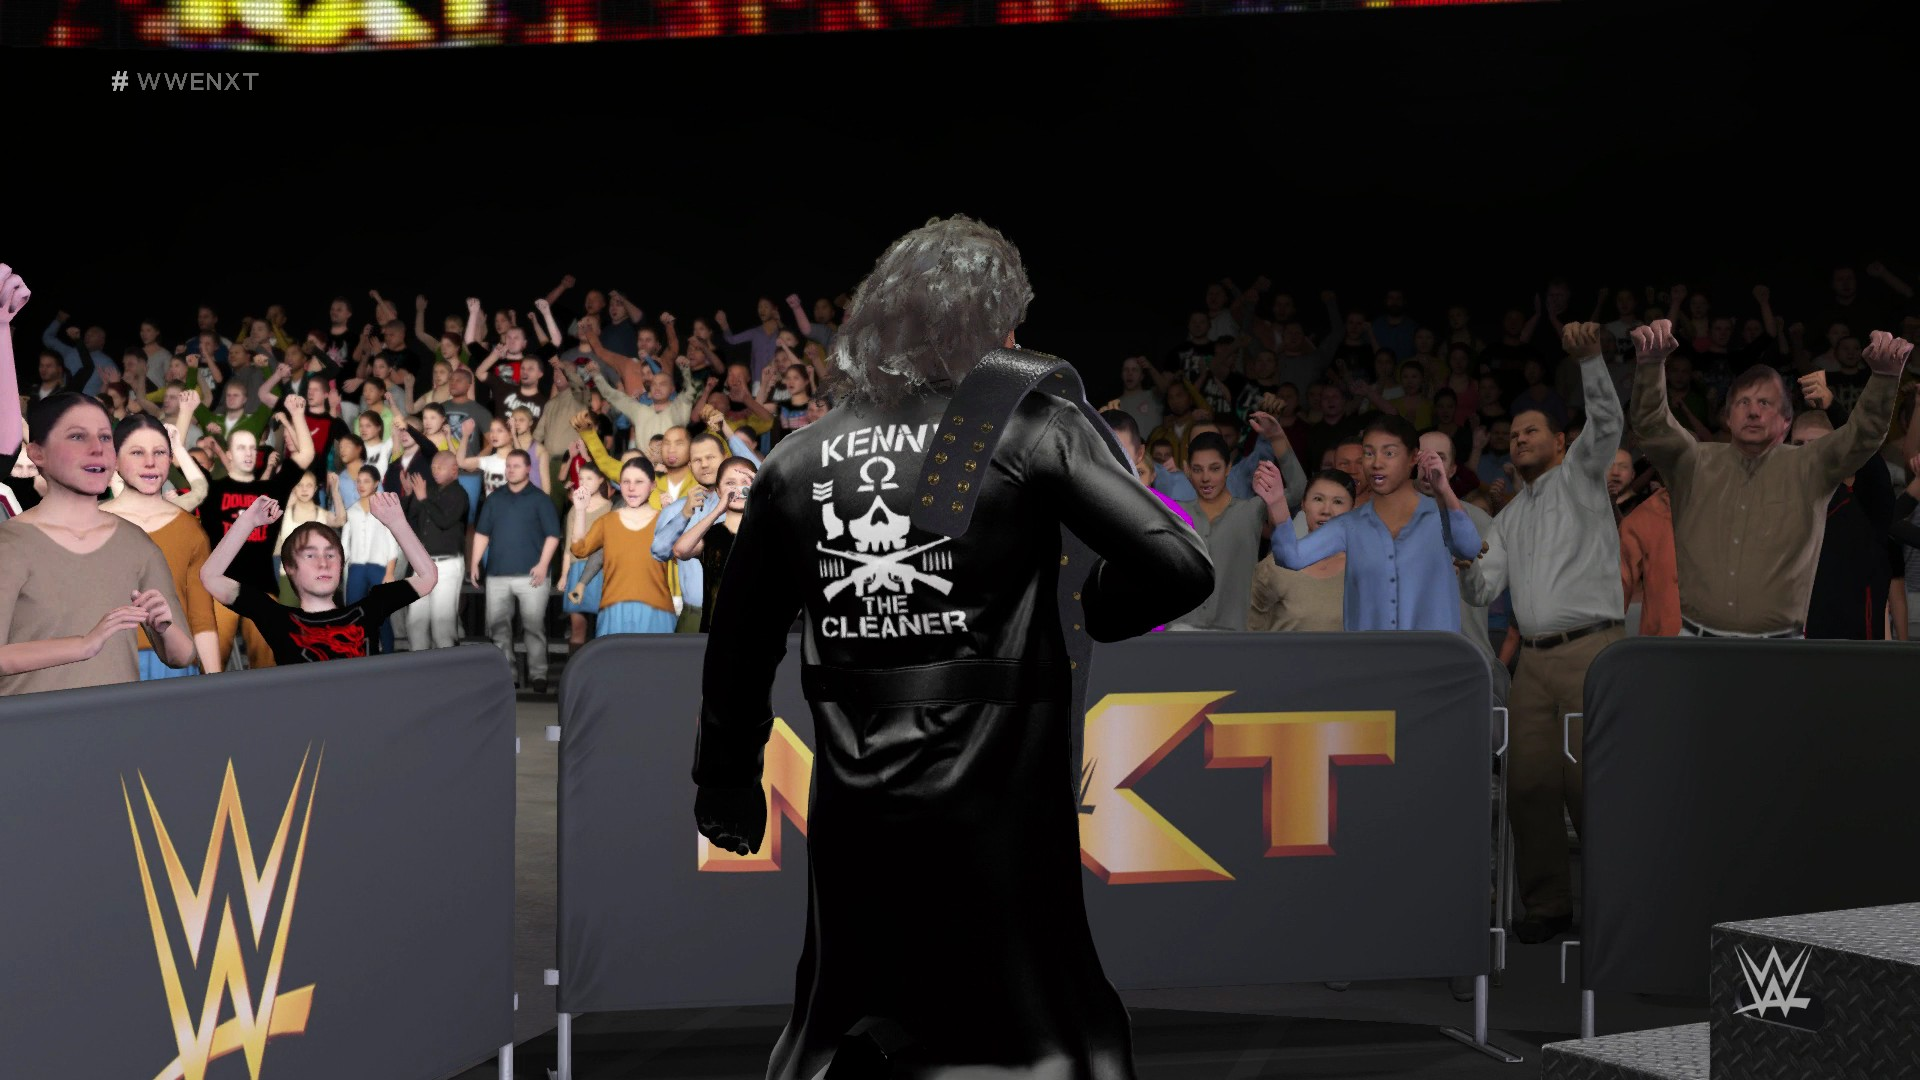 bullet club wallpaper,event,audience,performance,crowd,competition event